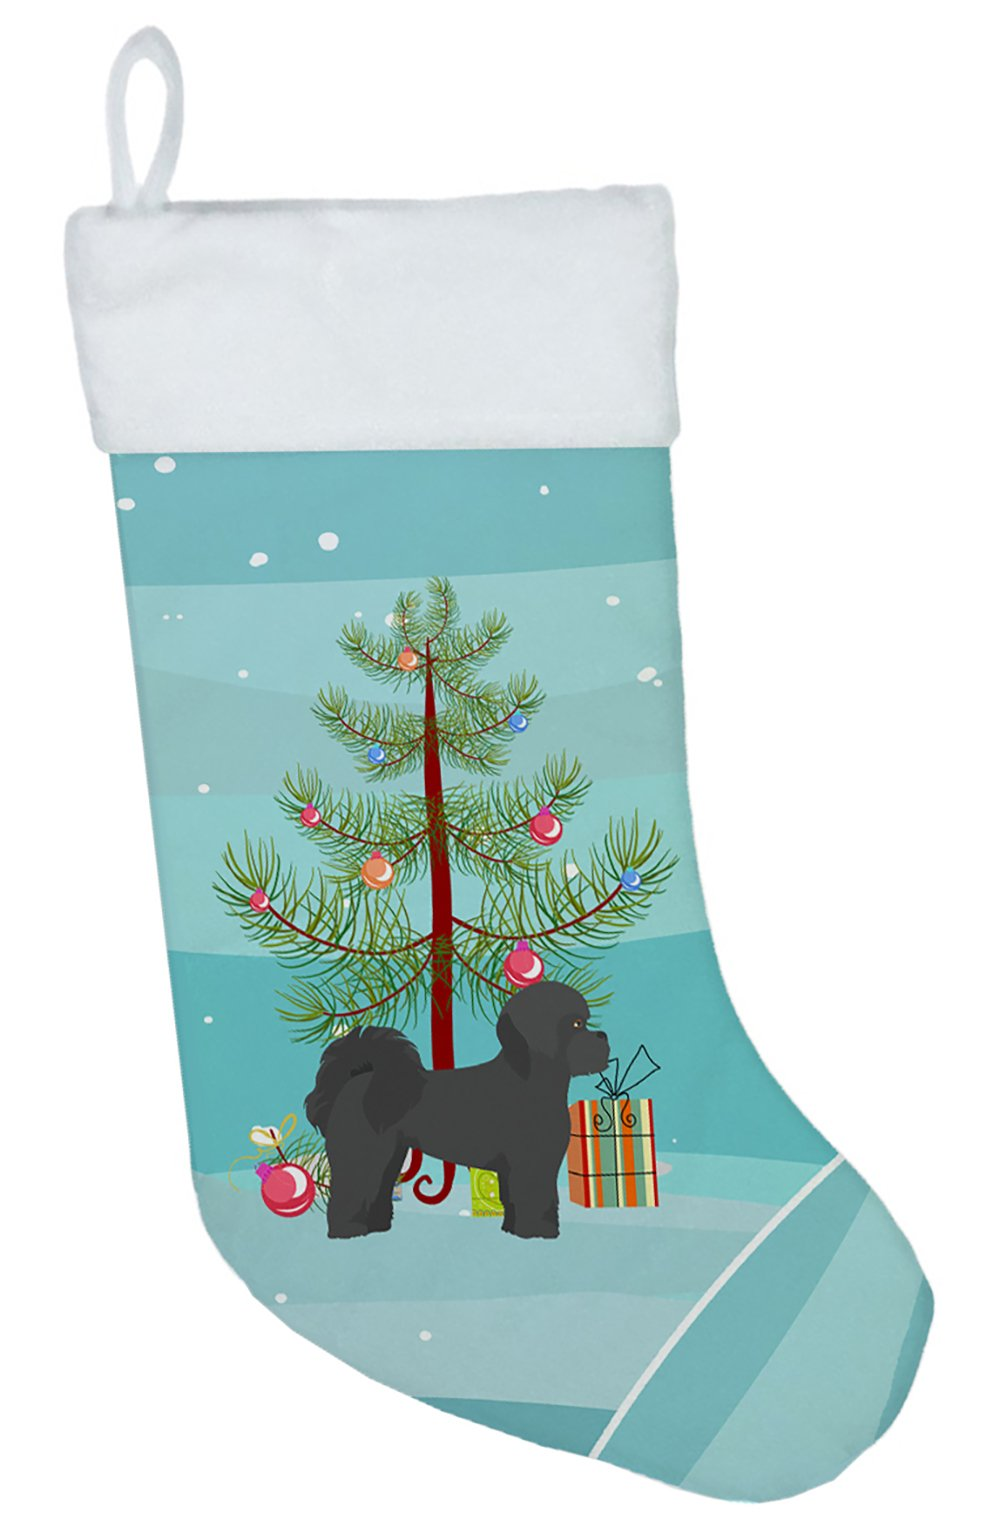 Black Mal-Shi Christmas Tree Christmas Stocking CK3852CS by Caroline's Treasures